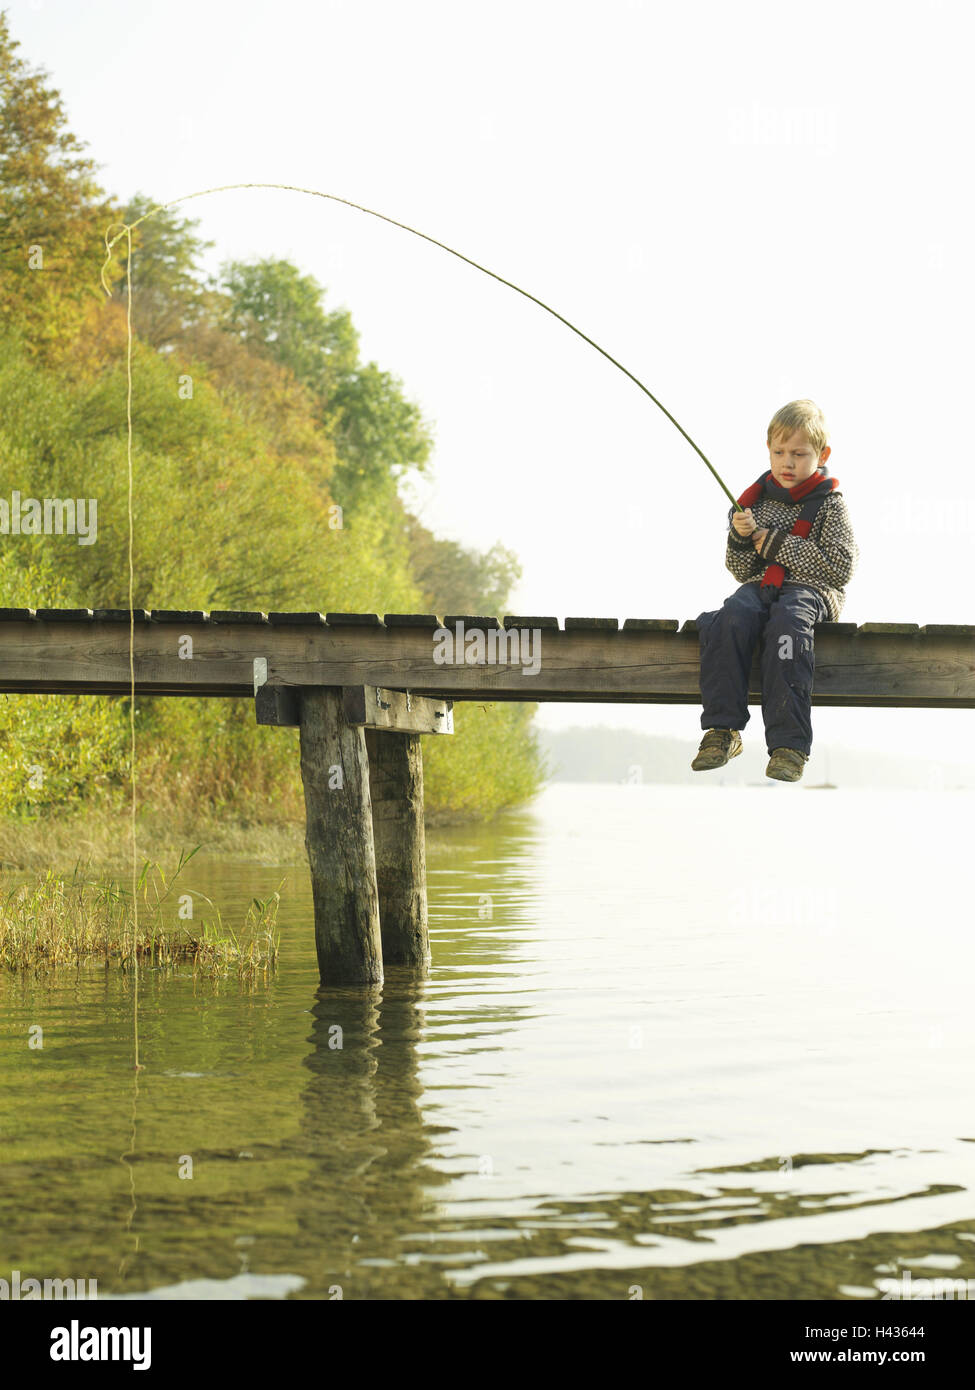 Lakes, bridge, child, boy, sit, fish, wait, autumn, waters, wooden jetty, water, leisure time, holidays, autumn - Stock Image